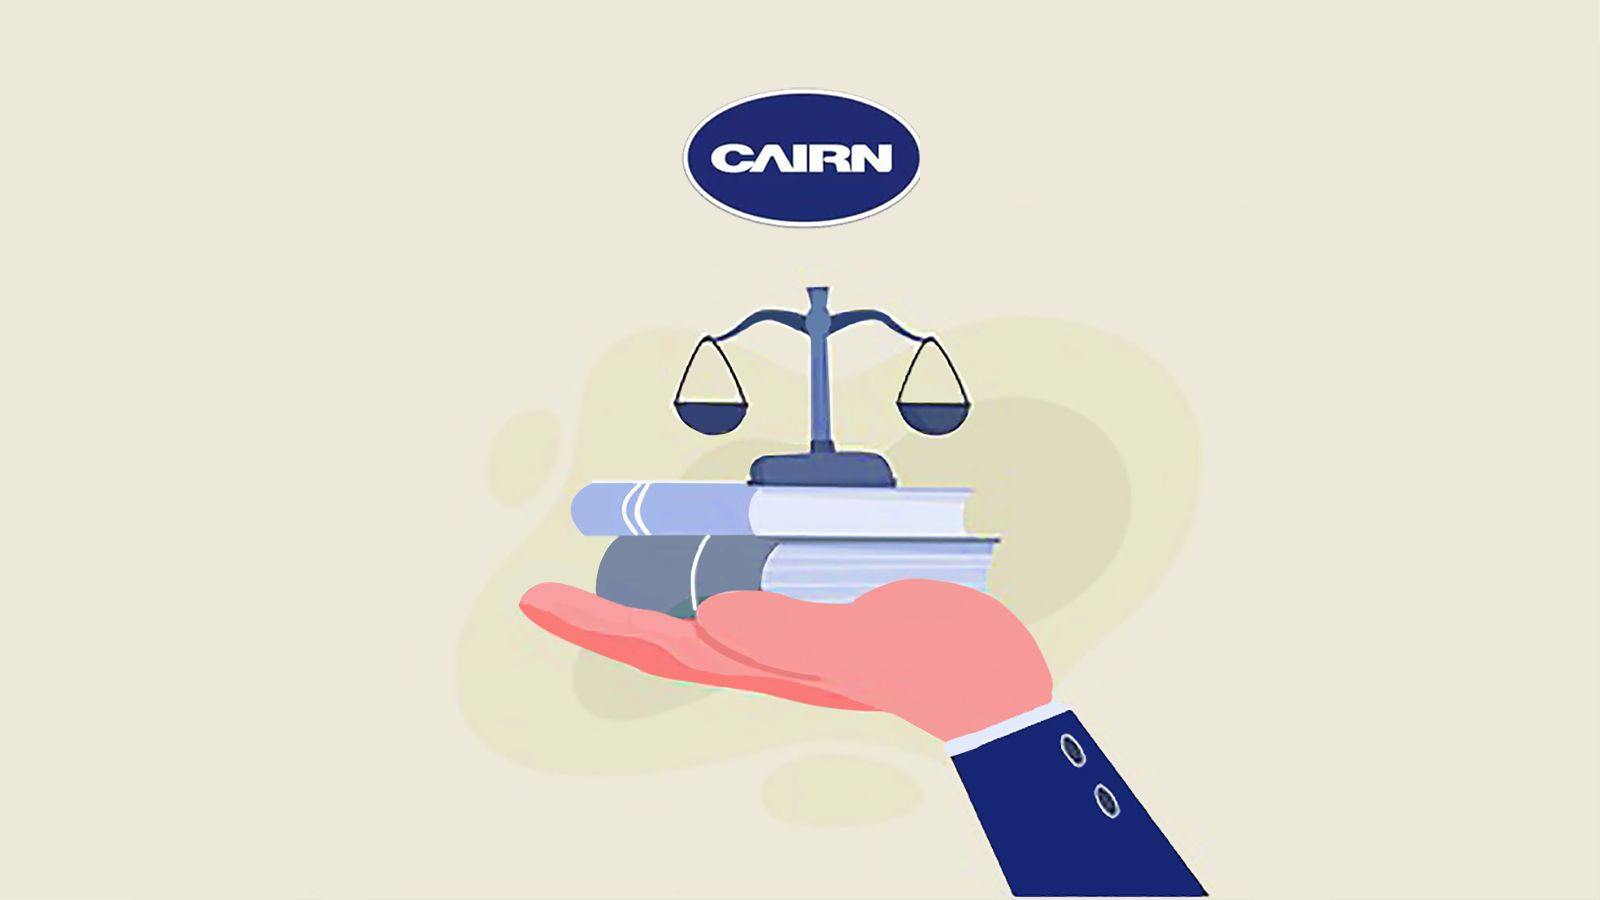 What exactly is the Cairn Arbitration Case?